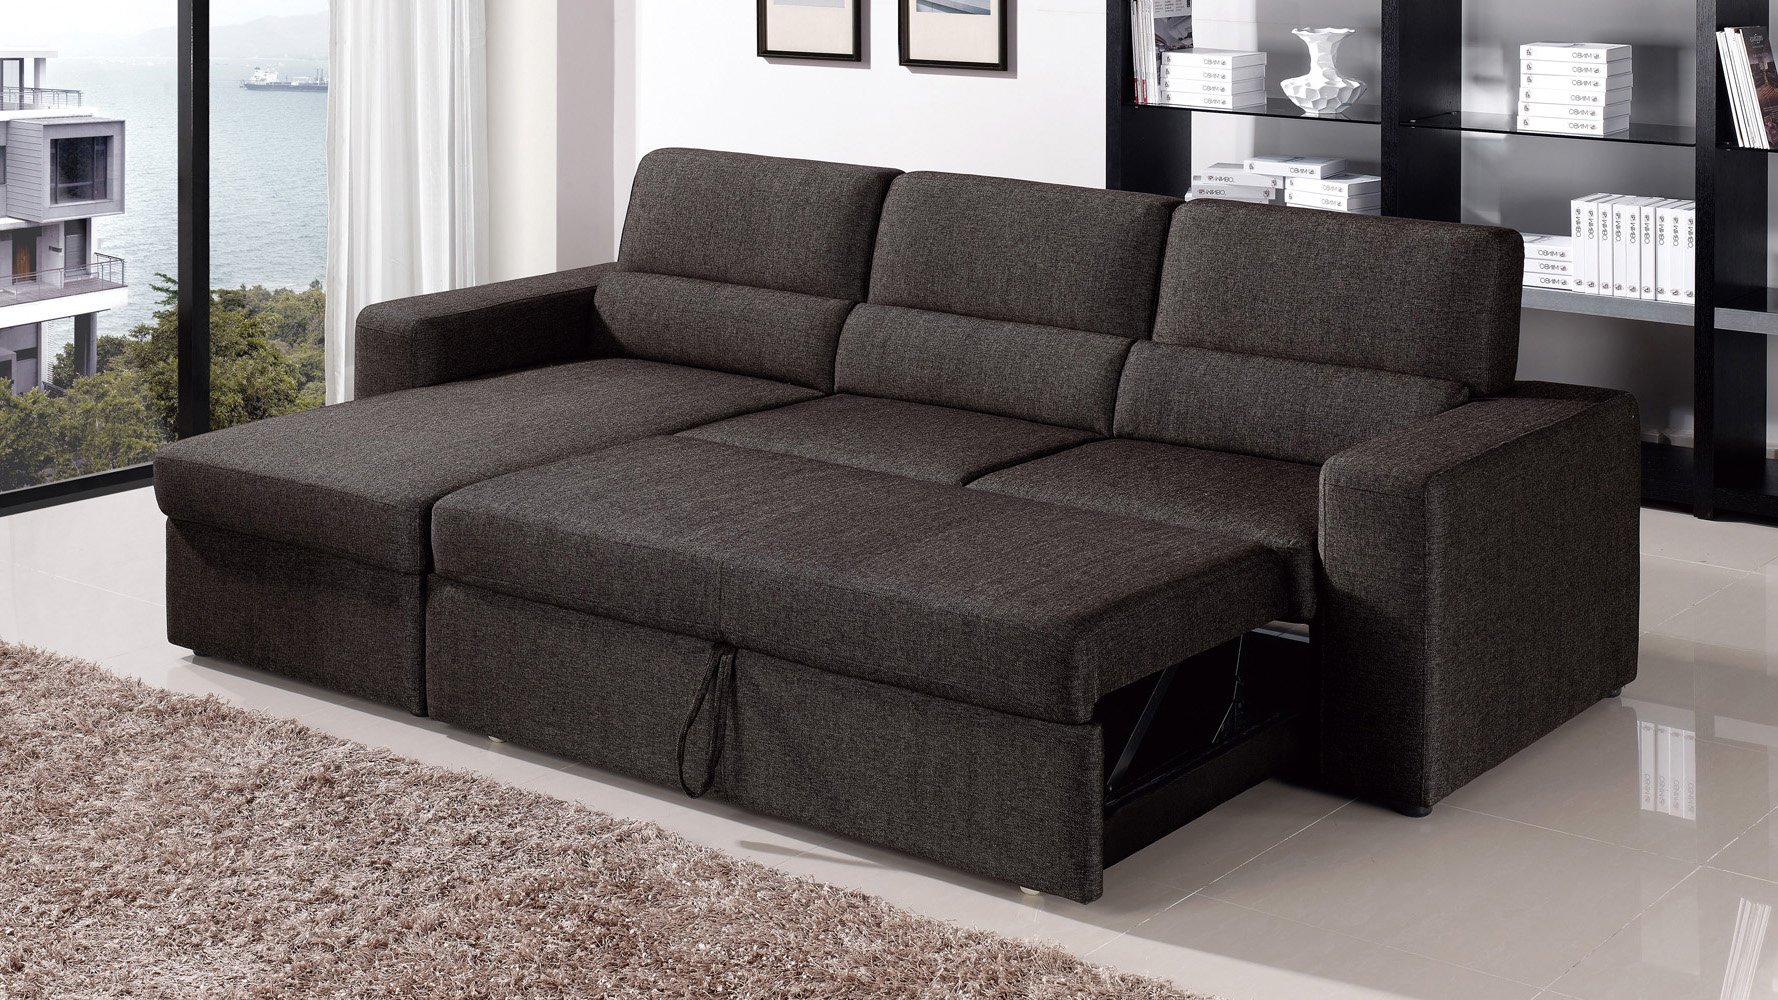 Black brown clubber sleeper sectional sofa zuri furniture Chaise design confortable